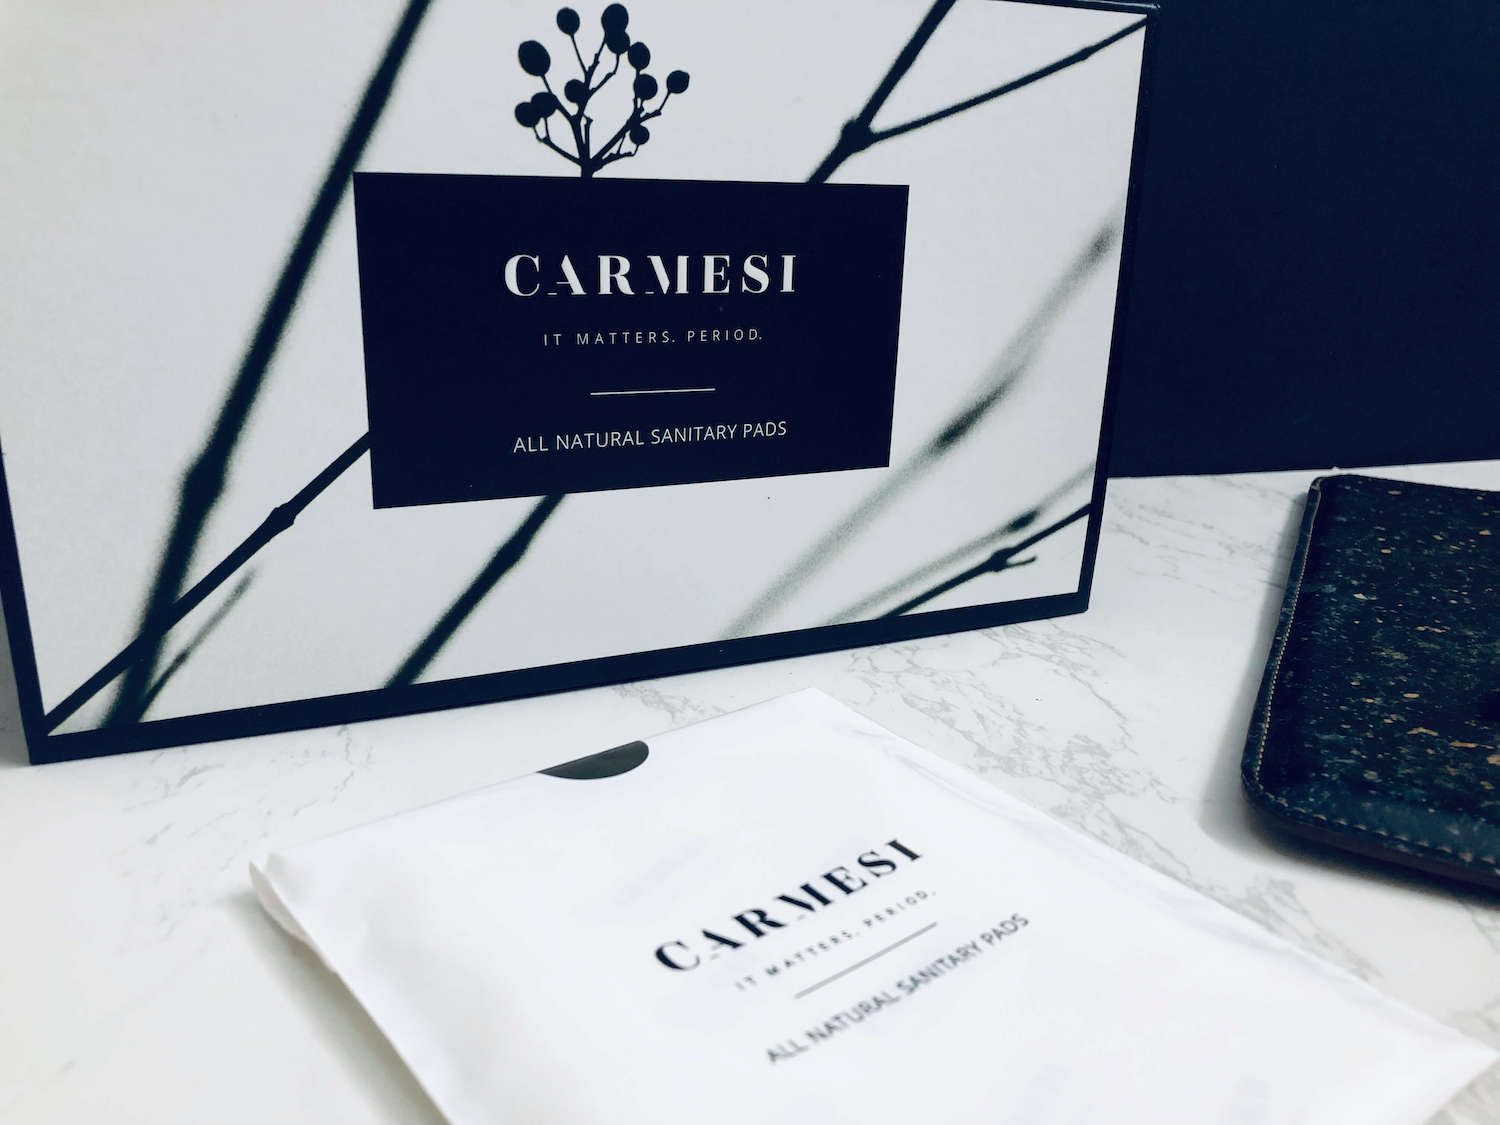 carmesi pads packaging